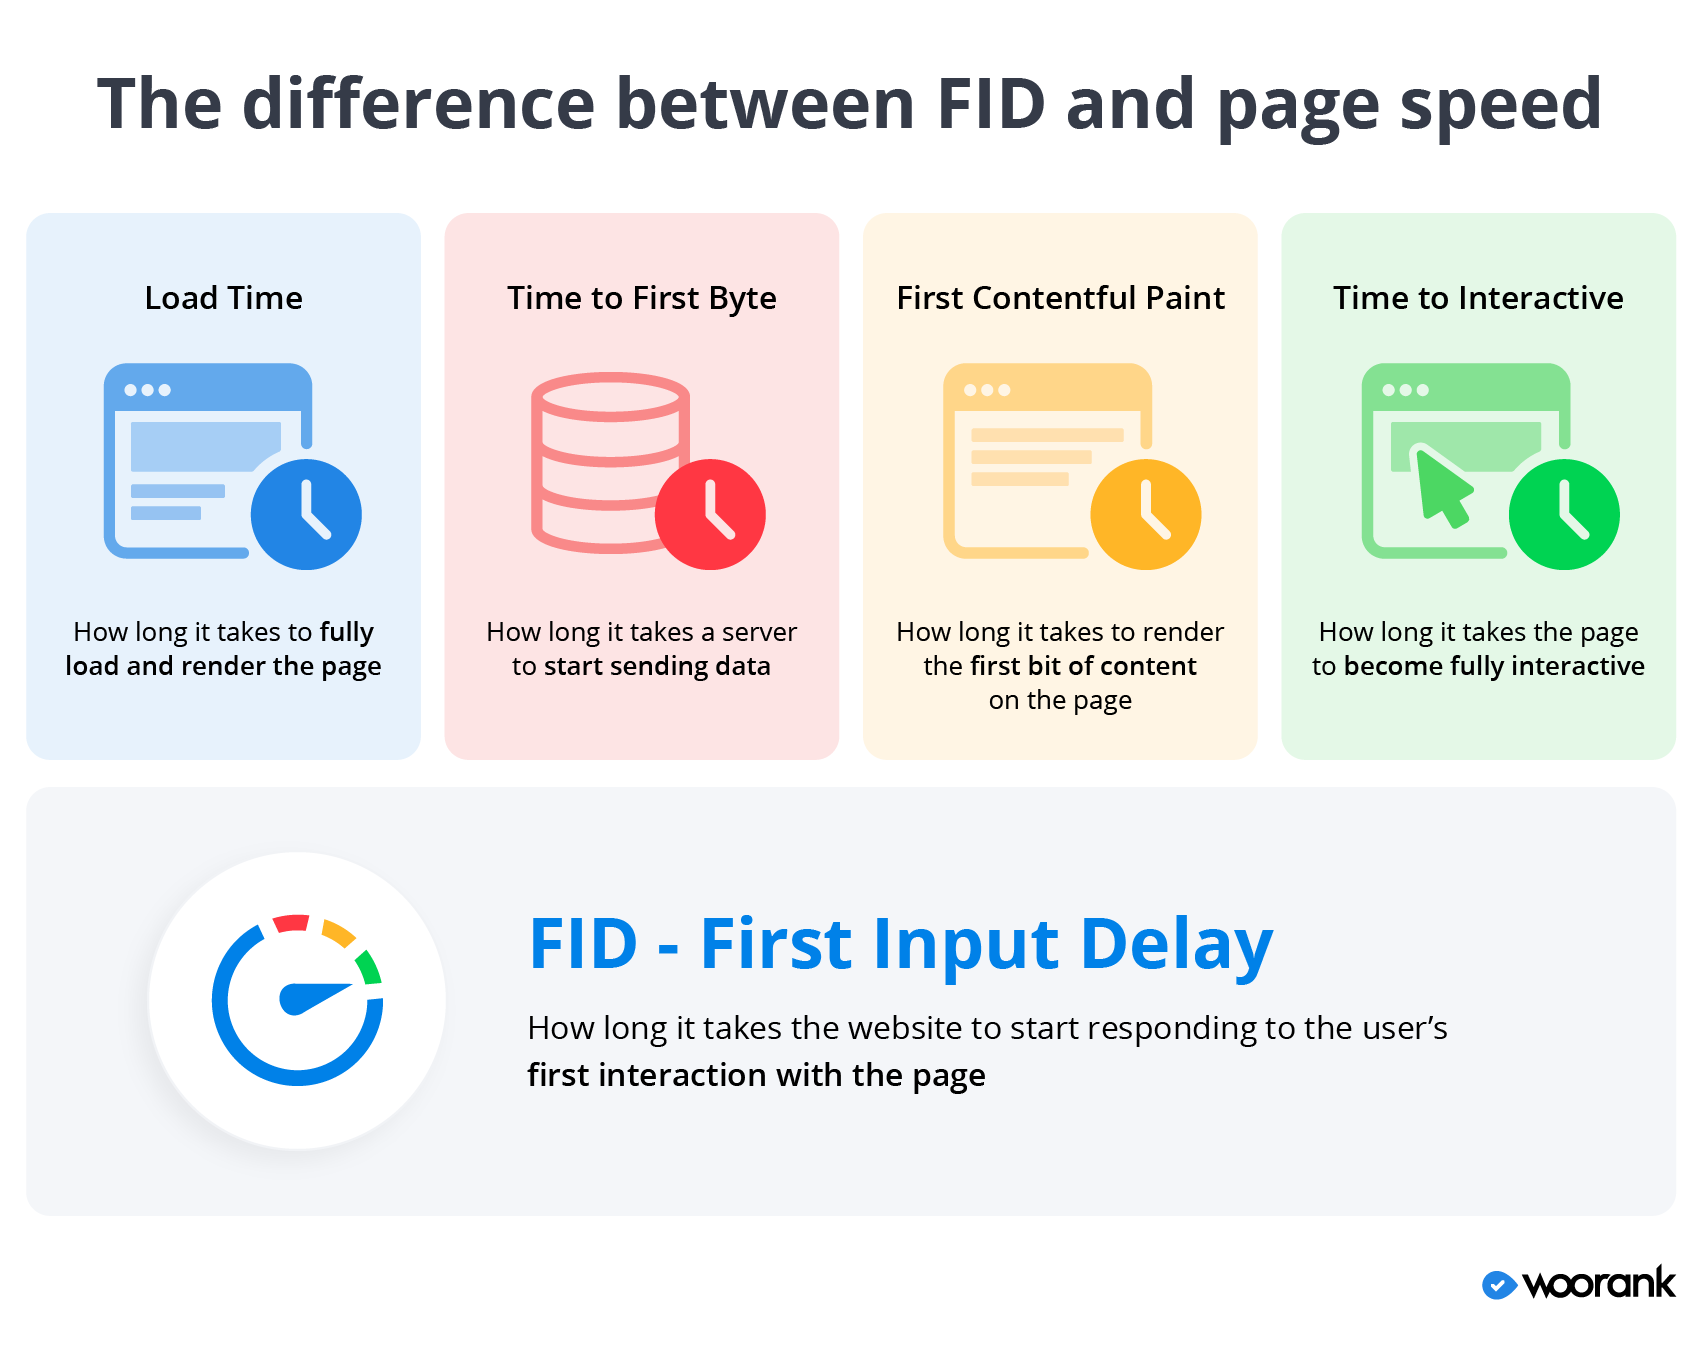 The difference between FID and page speed